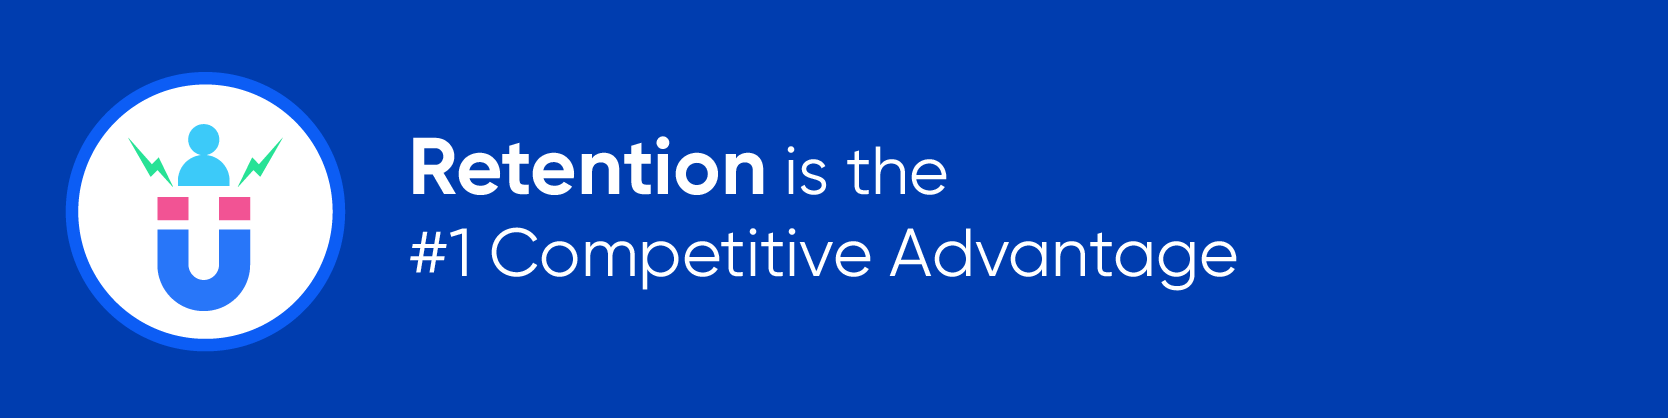 Retention is the #1 Competitive Advantage